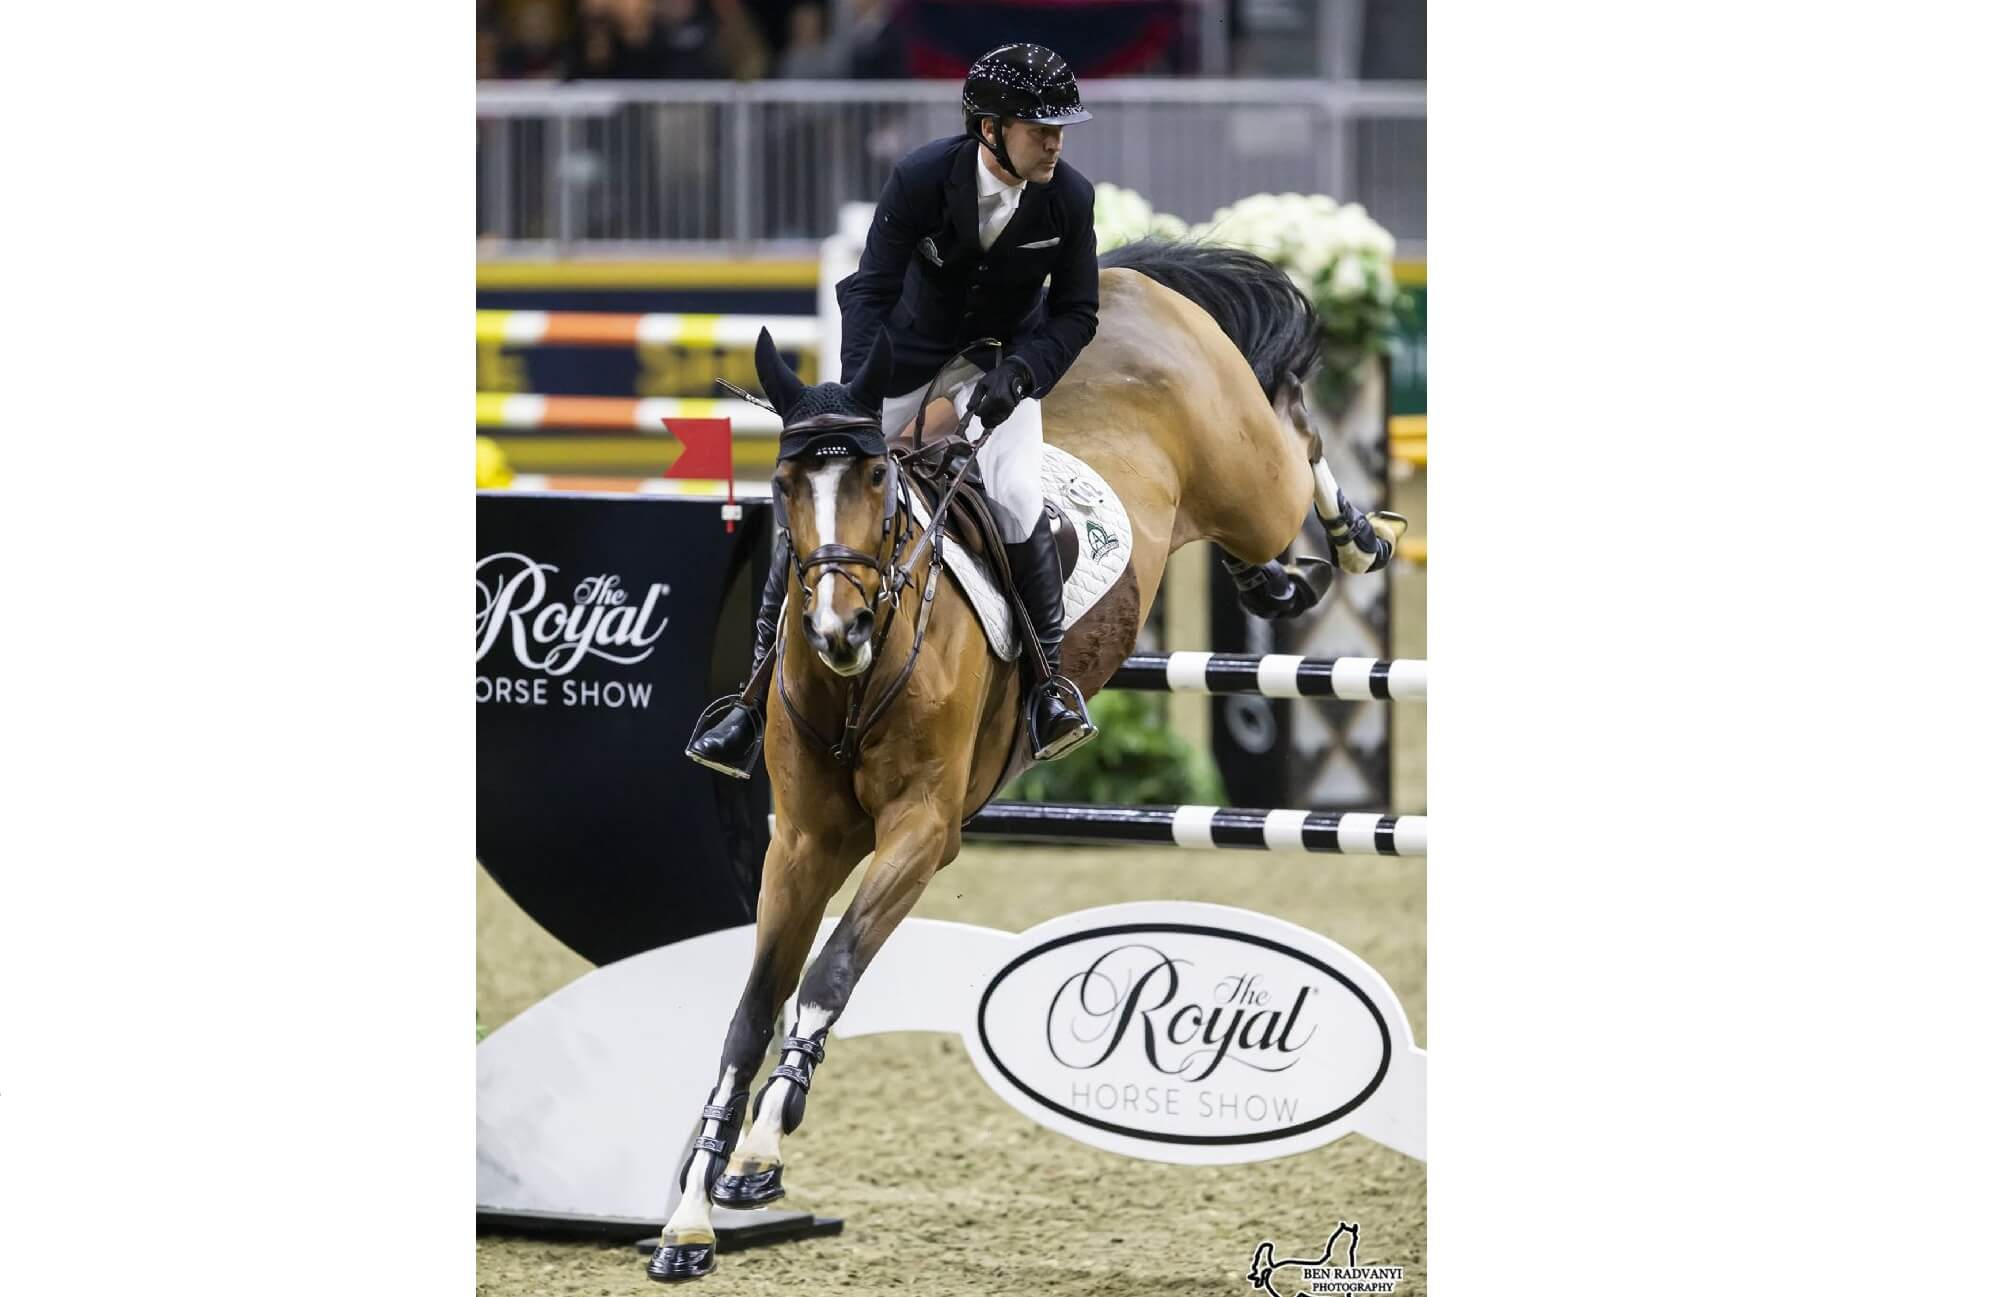 Thumbnail for Eric Lamaze Aces first International Class at Royal Horse Show